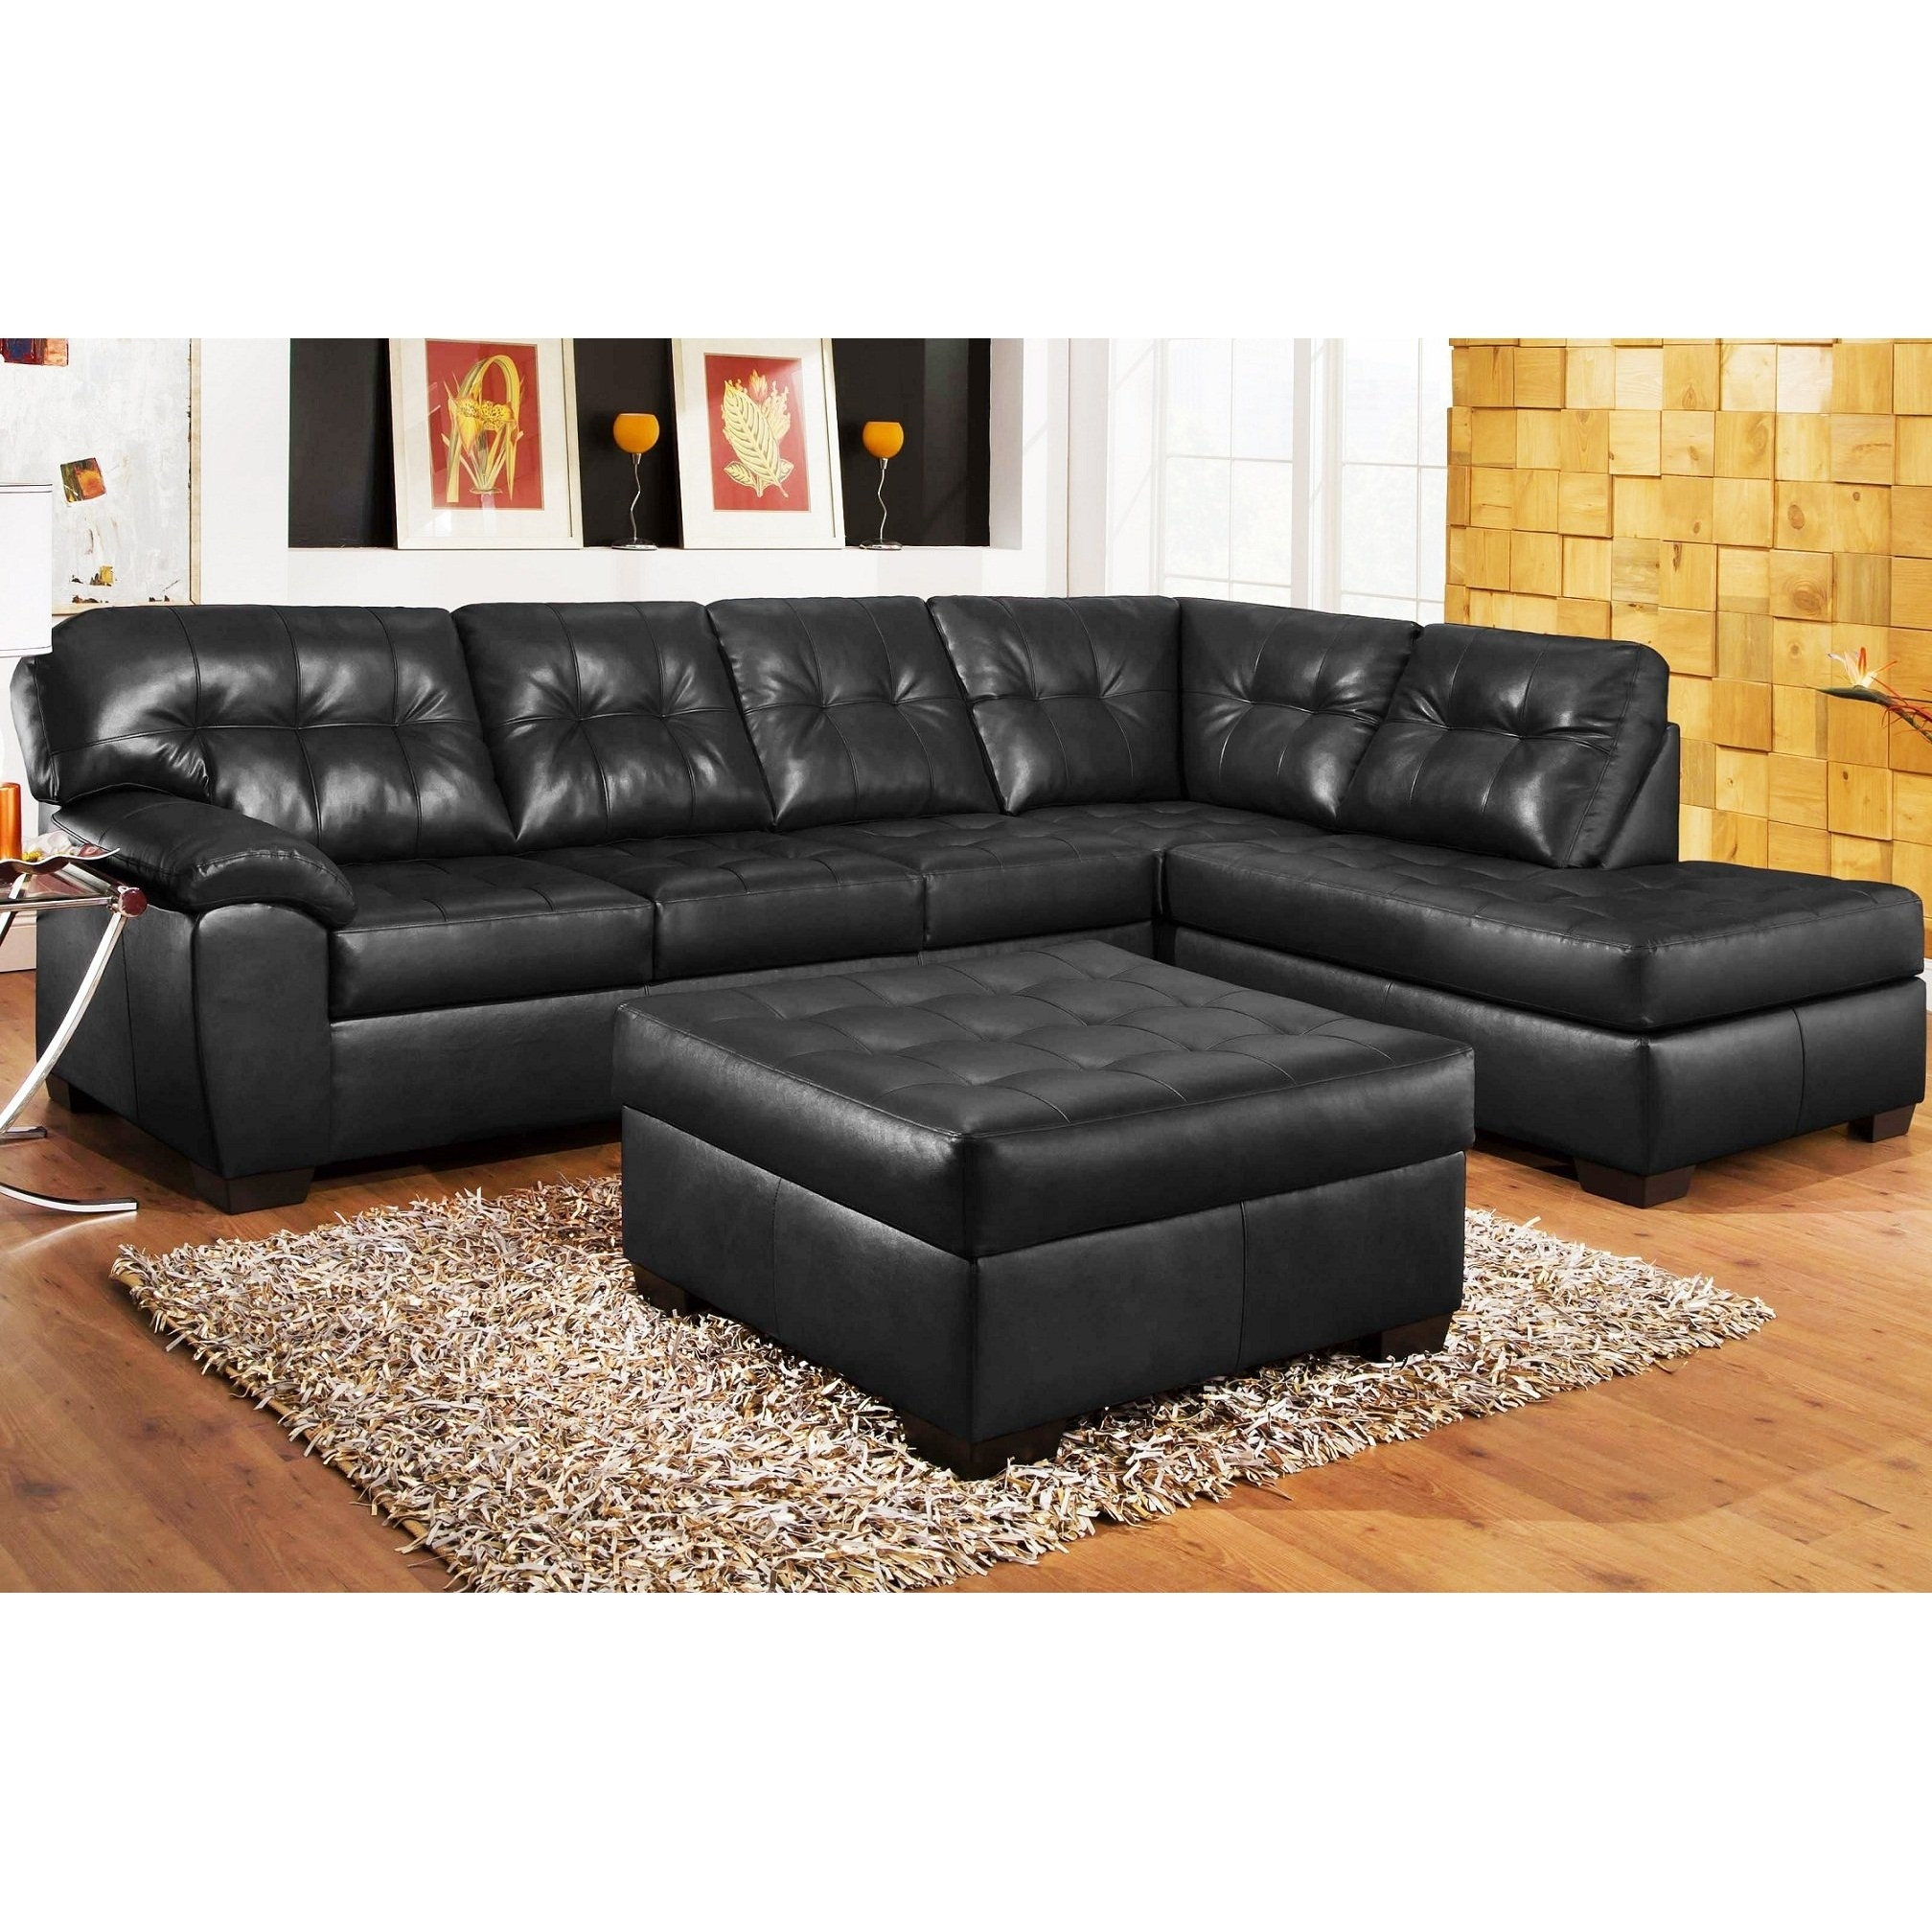 3Pc Black Leather Sectional Sofa , Chaise , Ottoman Set   Create The For Leather Sectionals With Chaise And Ottoman (Photo 15 of 15)